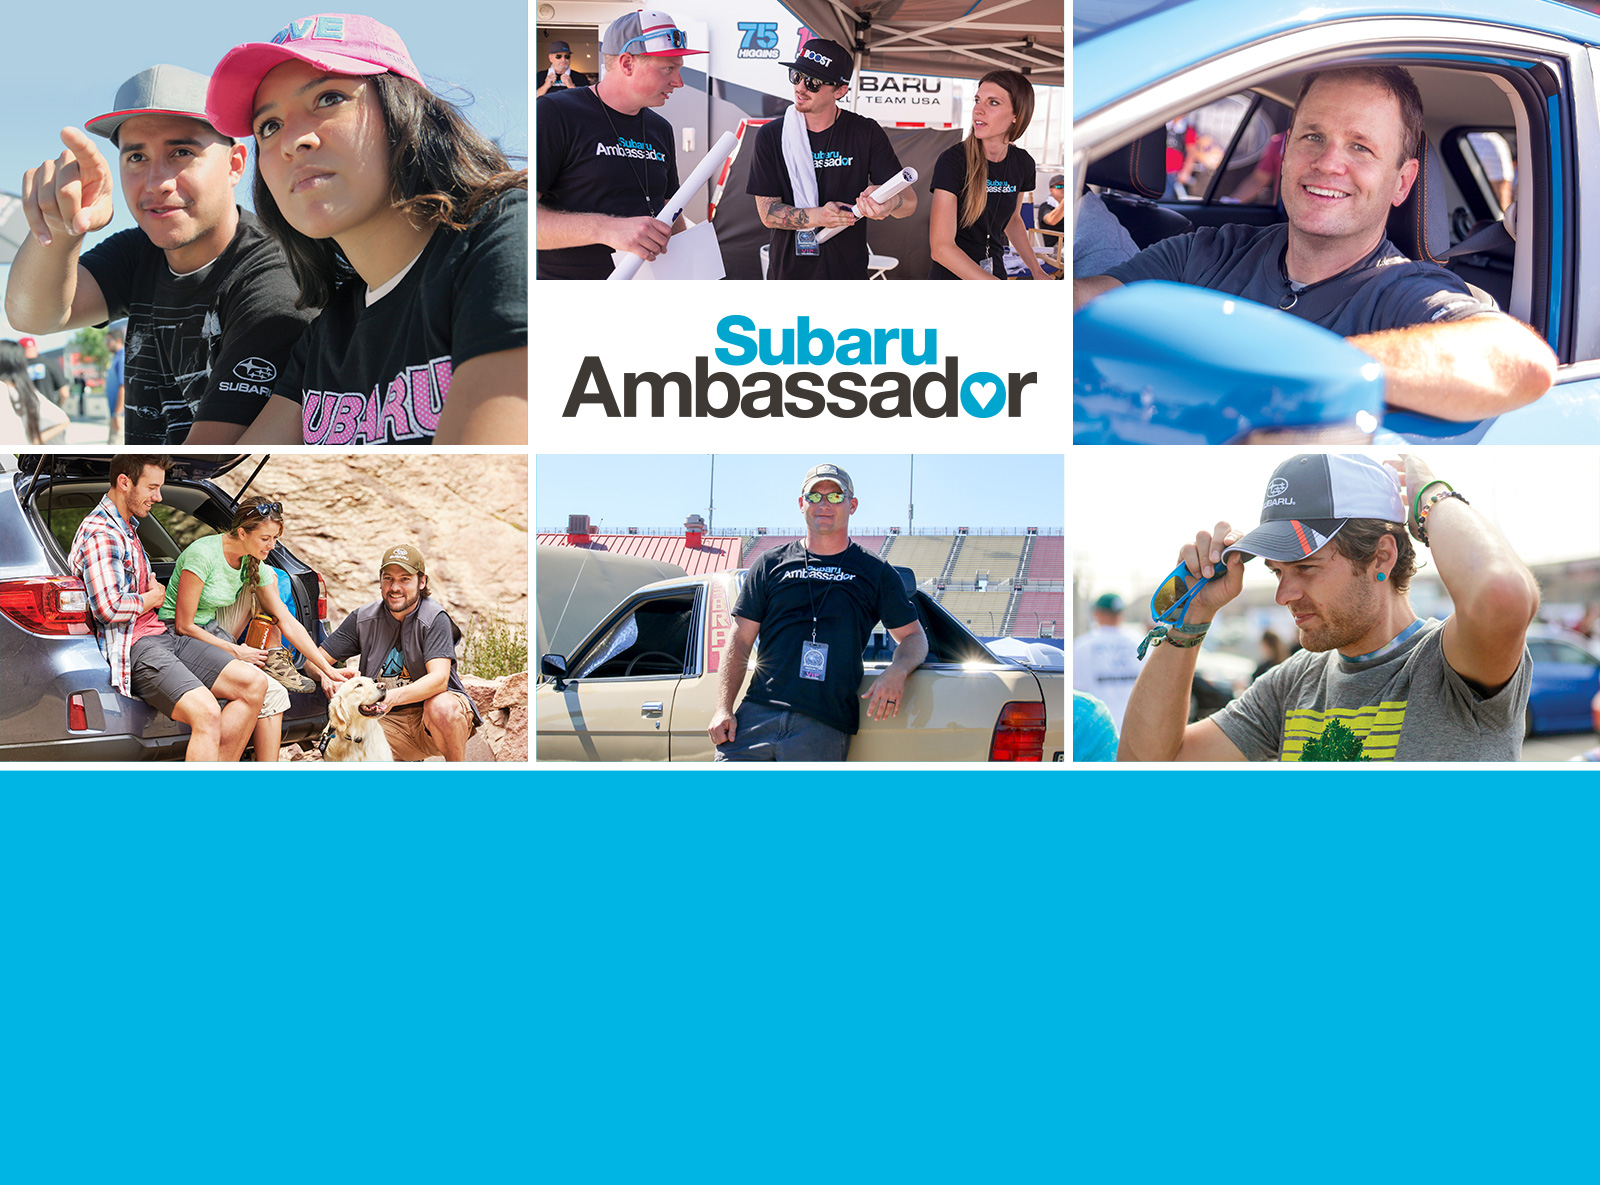 Share your Love for Subaru! Become a Subaru Ambassasor